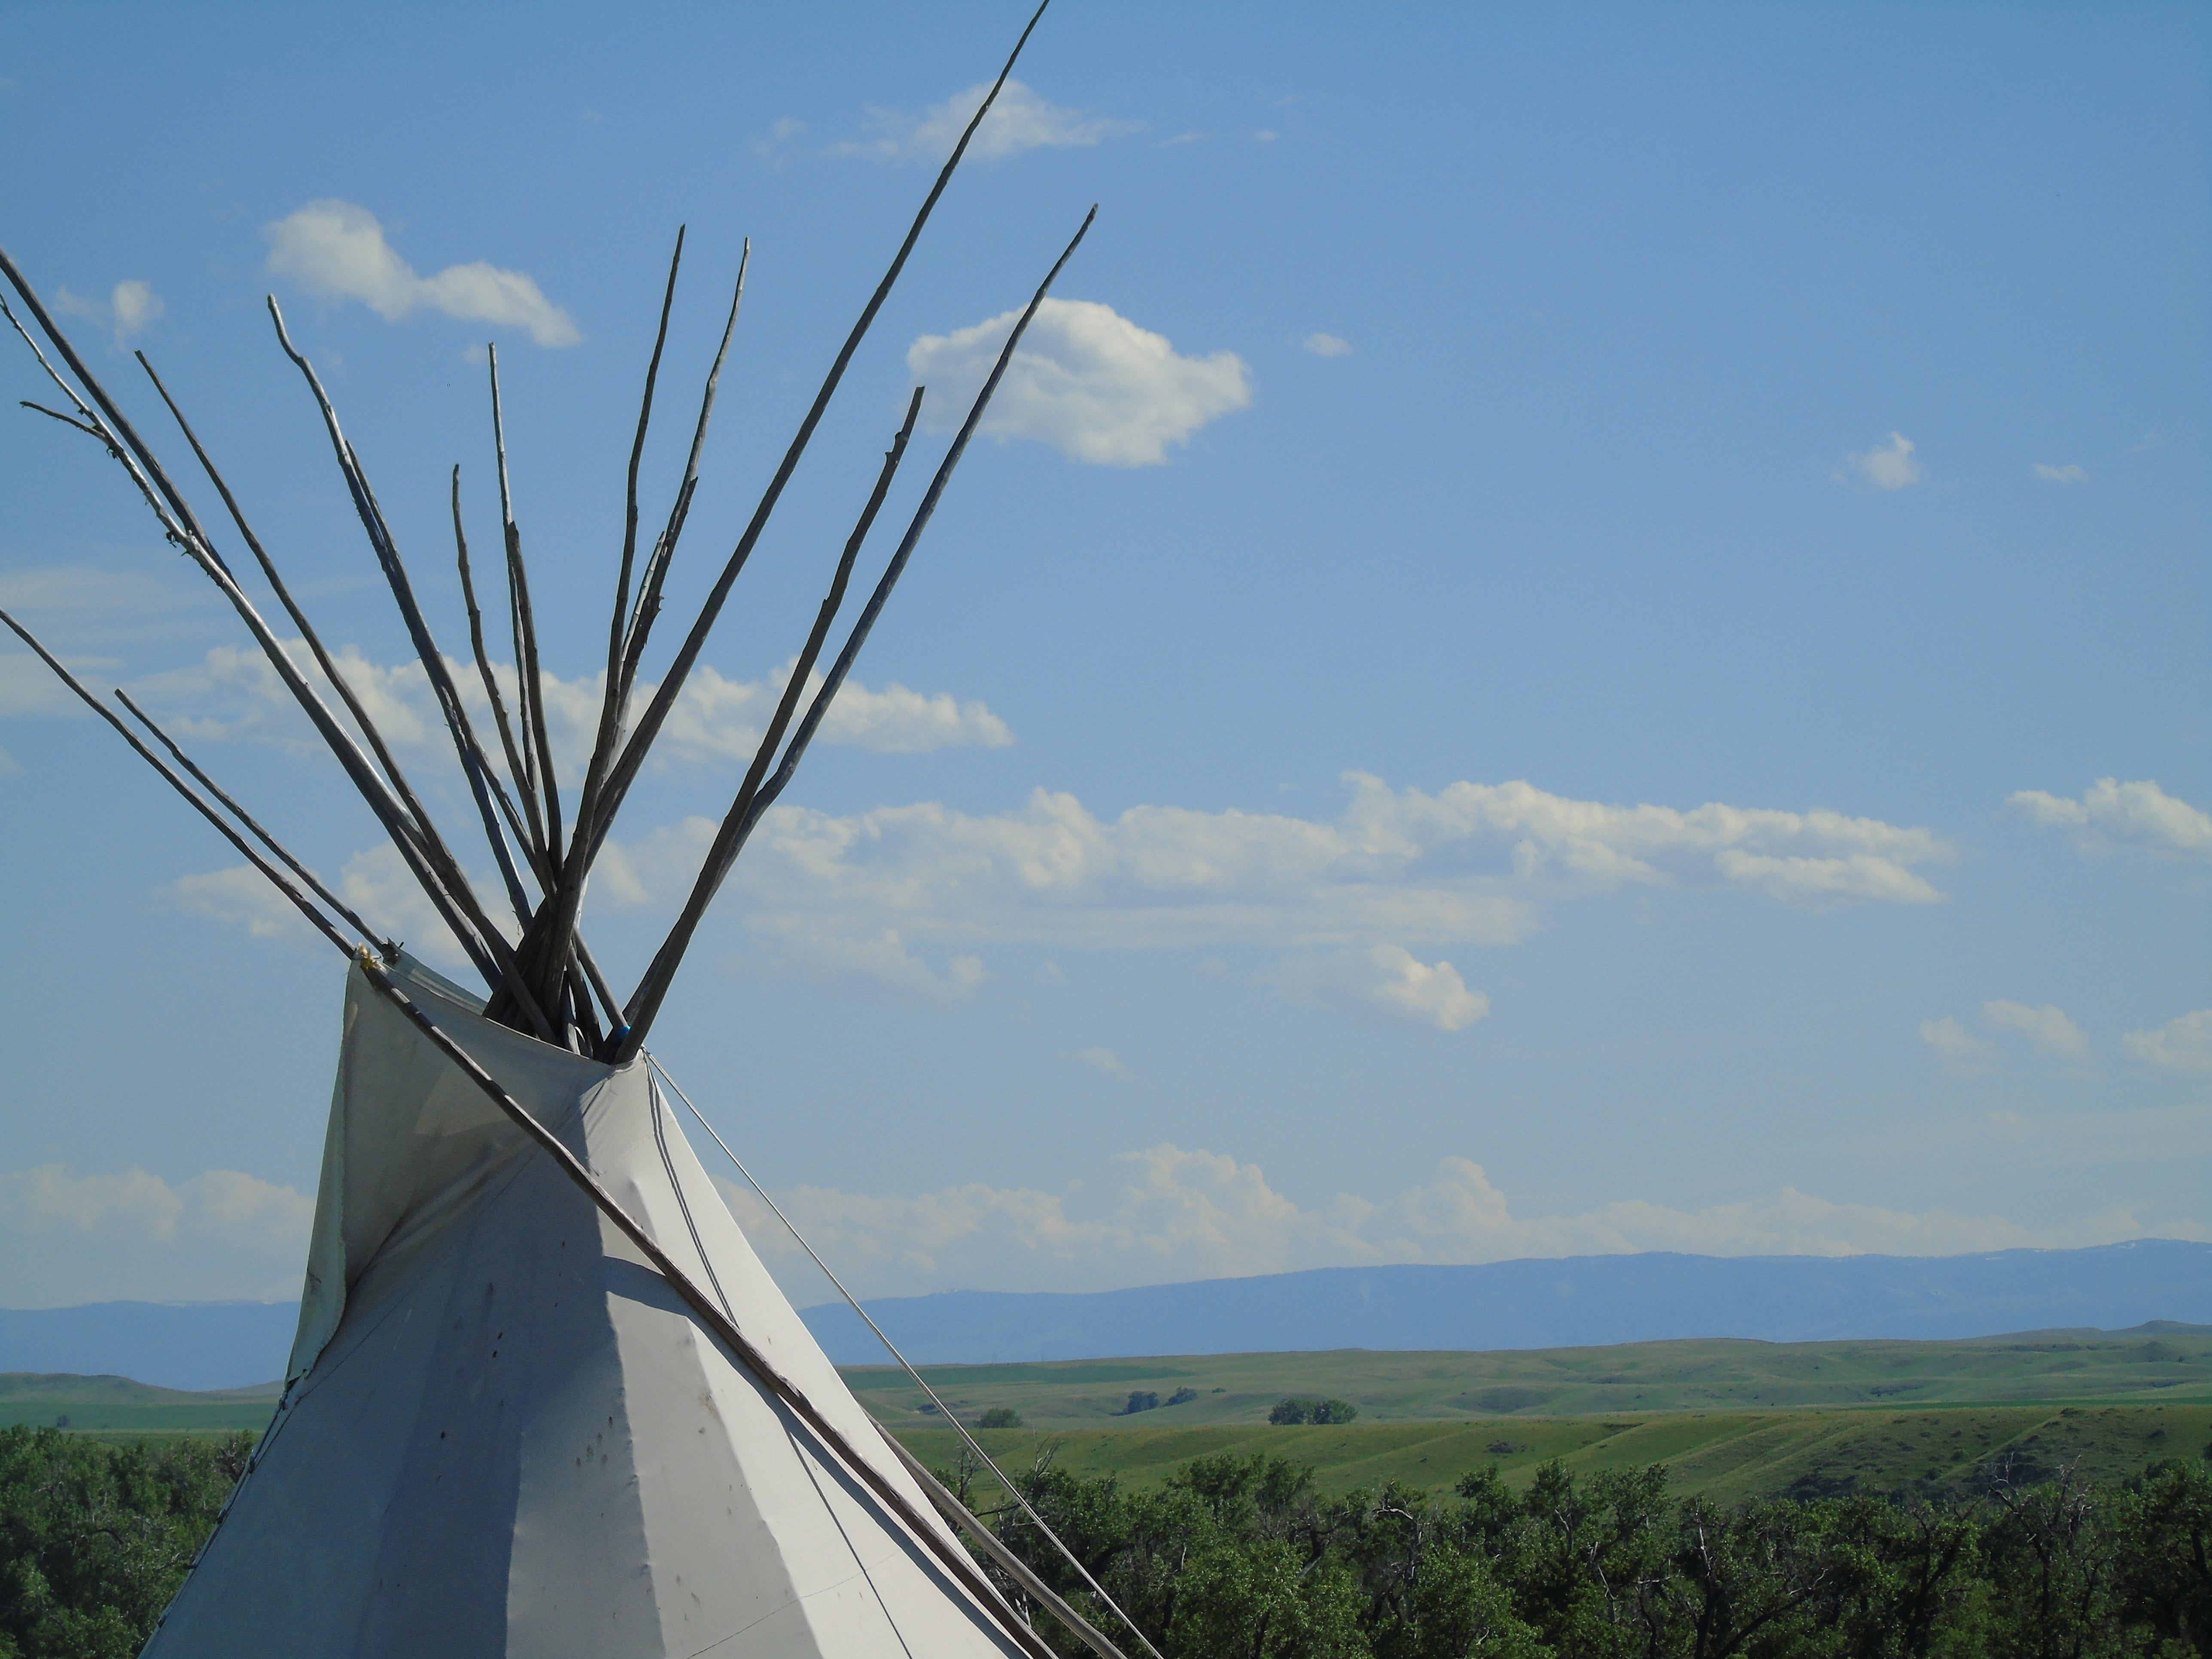 A teepee at the trading post across from the Little Bighorn Battlefield.